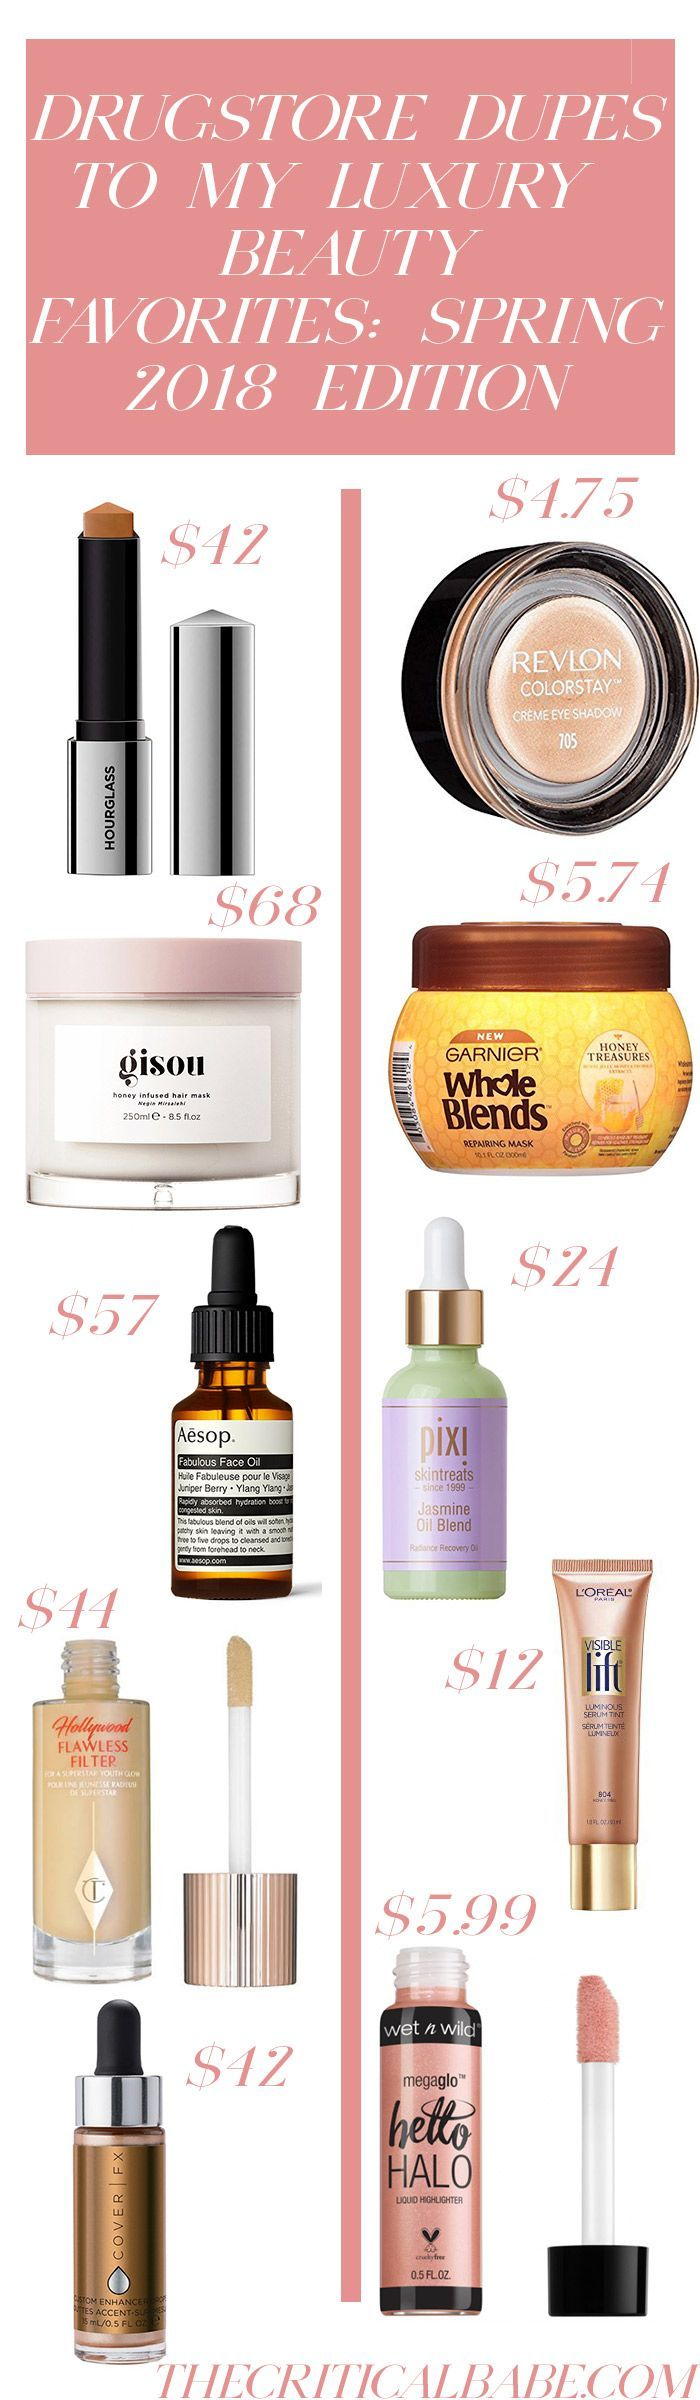 New In Drugstore Dupes Makeup dupes, Beauty products